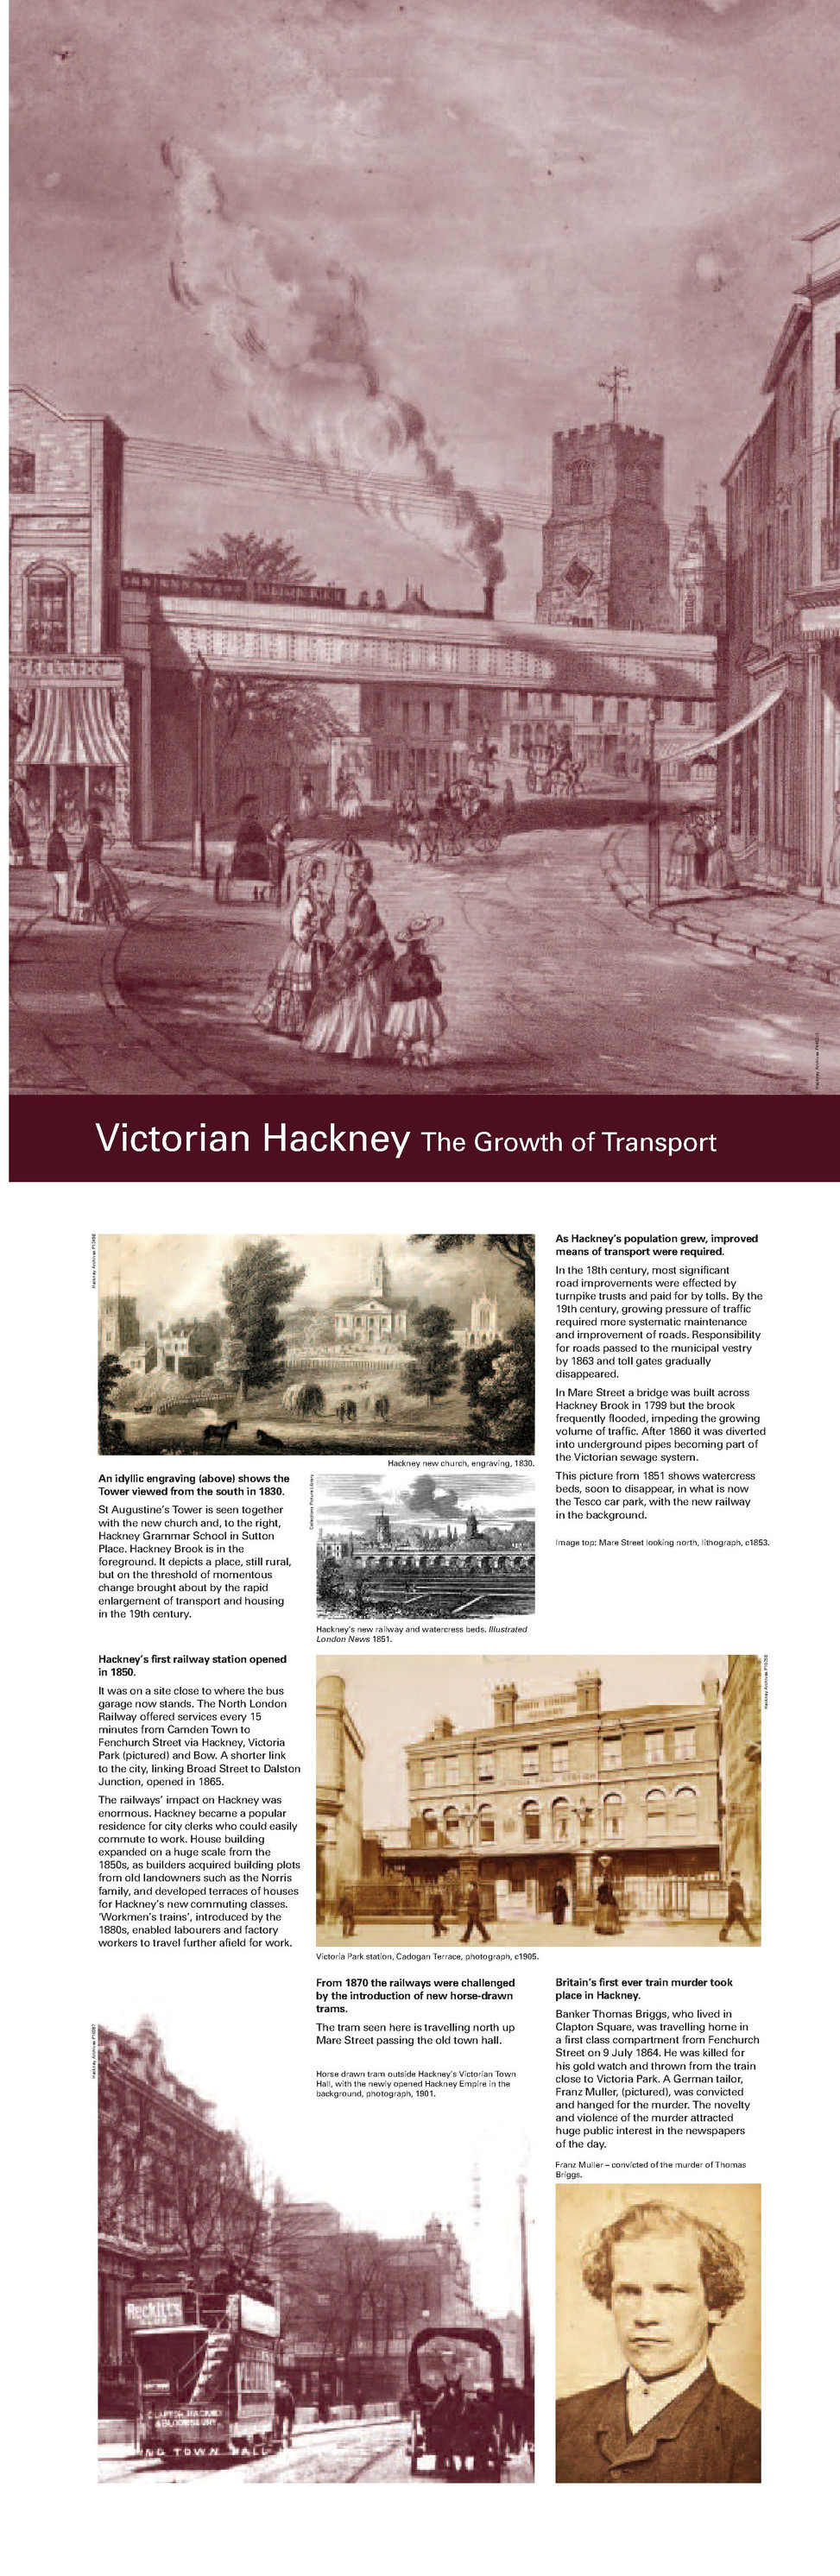 7 HACKNEY THROUGH THE AGES.